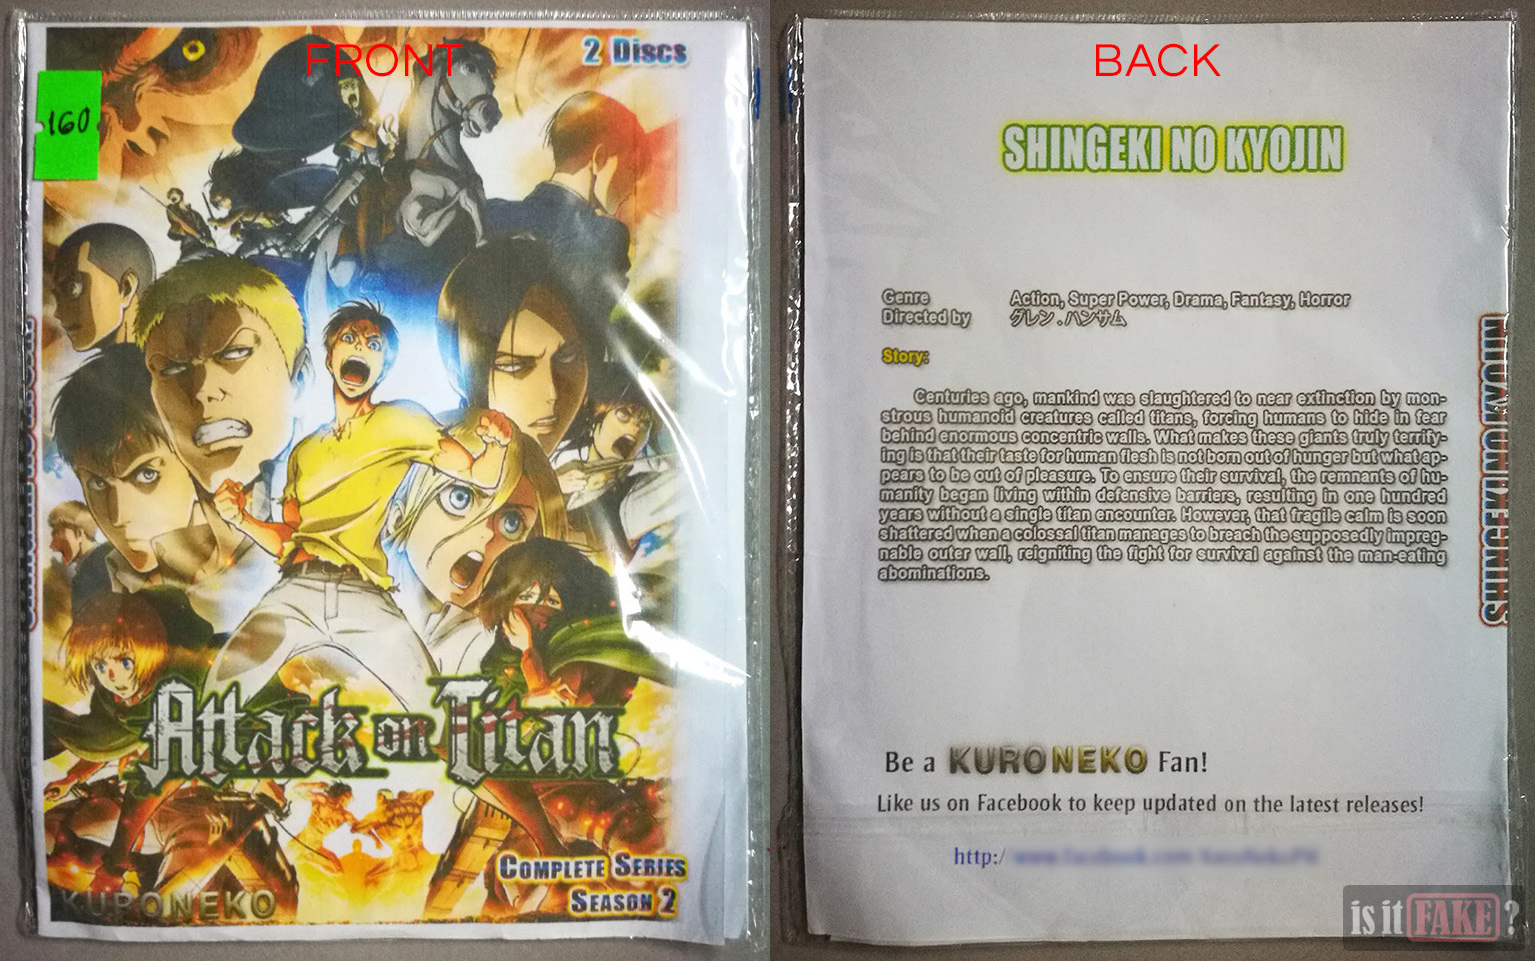 The packaging of the bootleg DVD from the front and the back